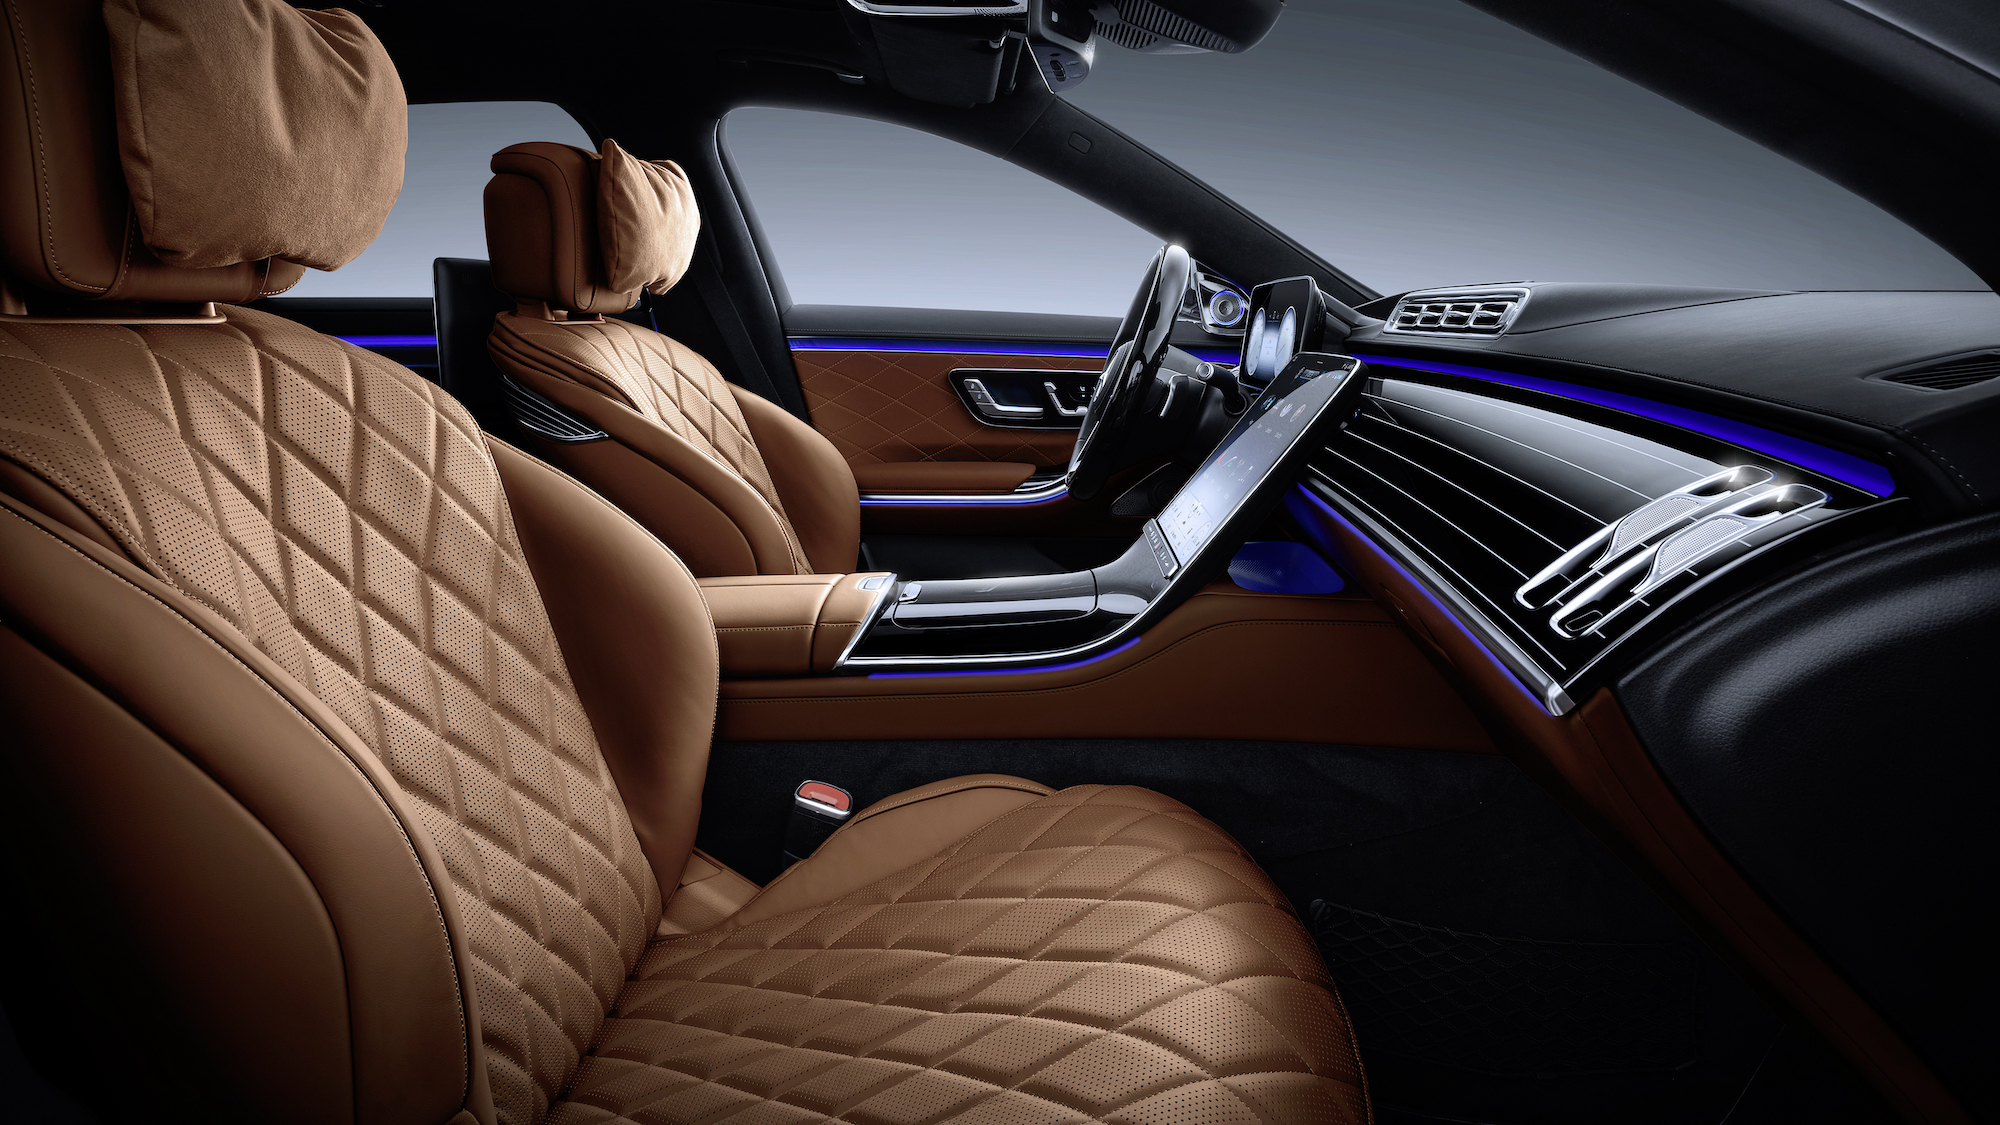 Ventilated Seats Work, How Do Cooling Car Seats Work